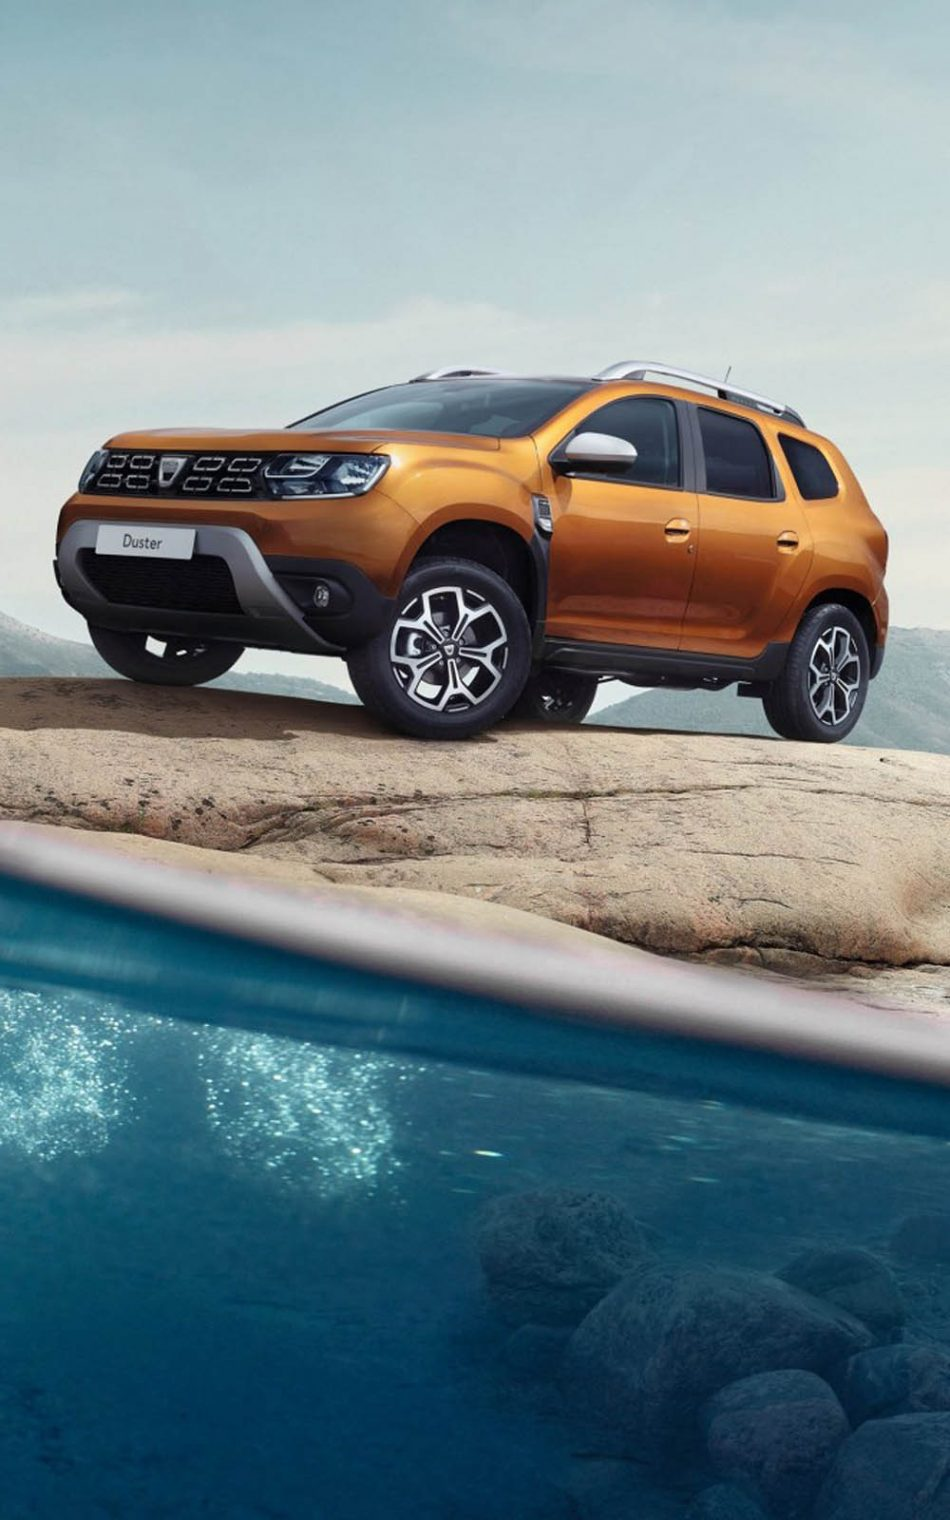 download new dacia duster 2018 free pure 4k ultra hd mobile wallpaper. Black Bedroom Furniture Sets. Home Design Ideas